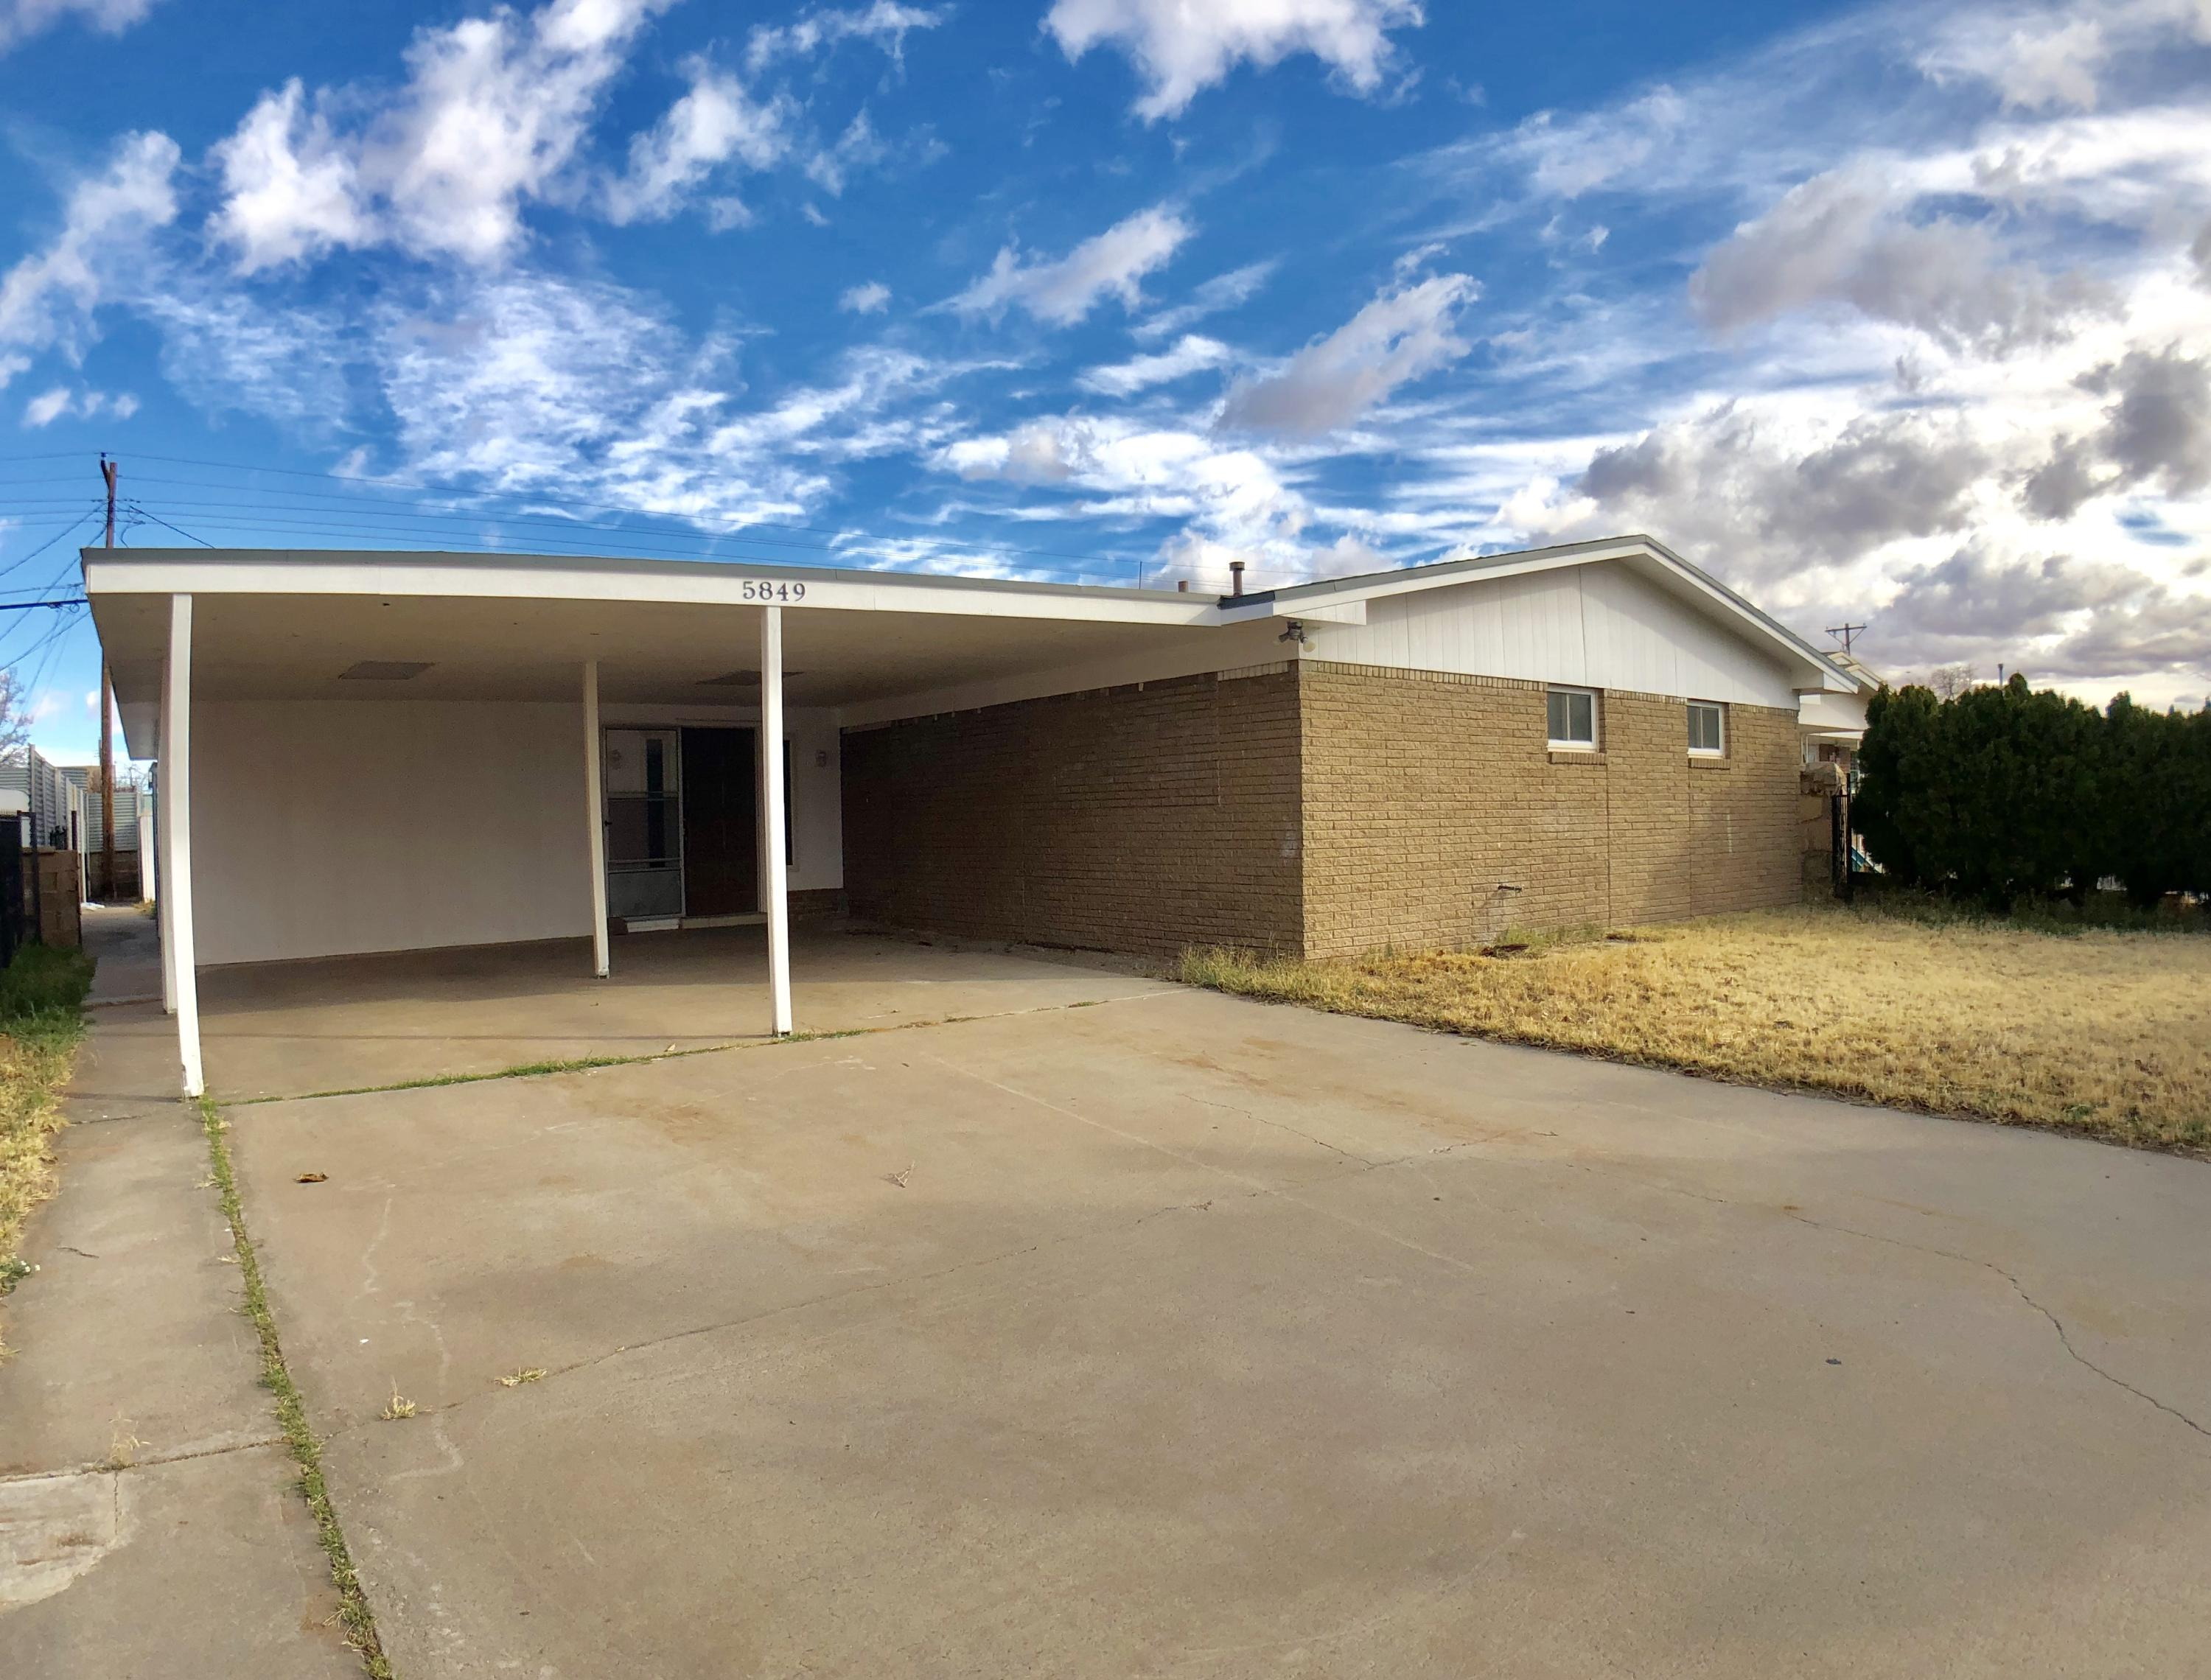 5849 MACAW, El Paso, Texas 79924, 3 Bedrooms Bedrooms, ,1 BathroomBathrooms,Residential,For sale,MACAW,802148